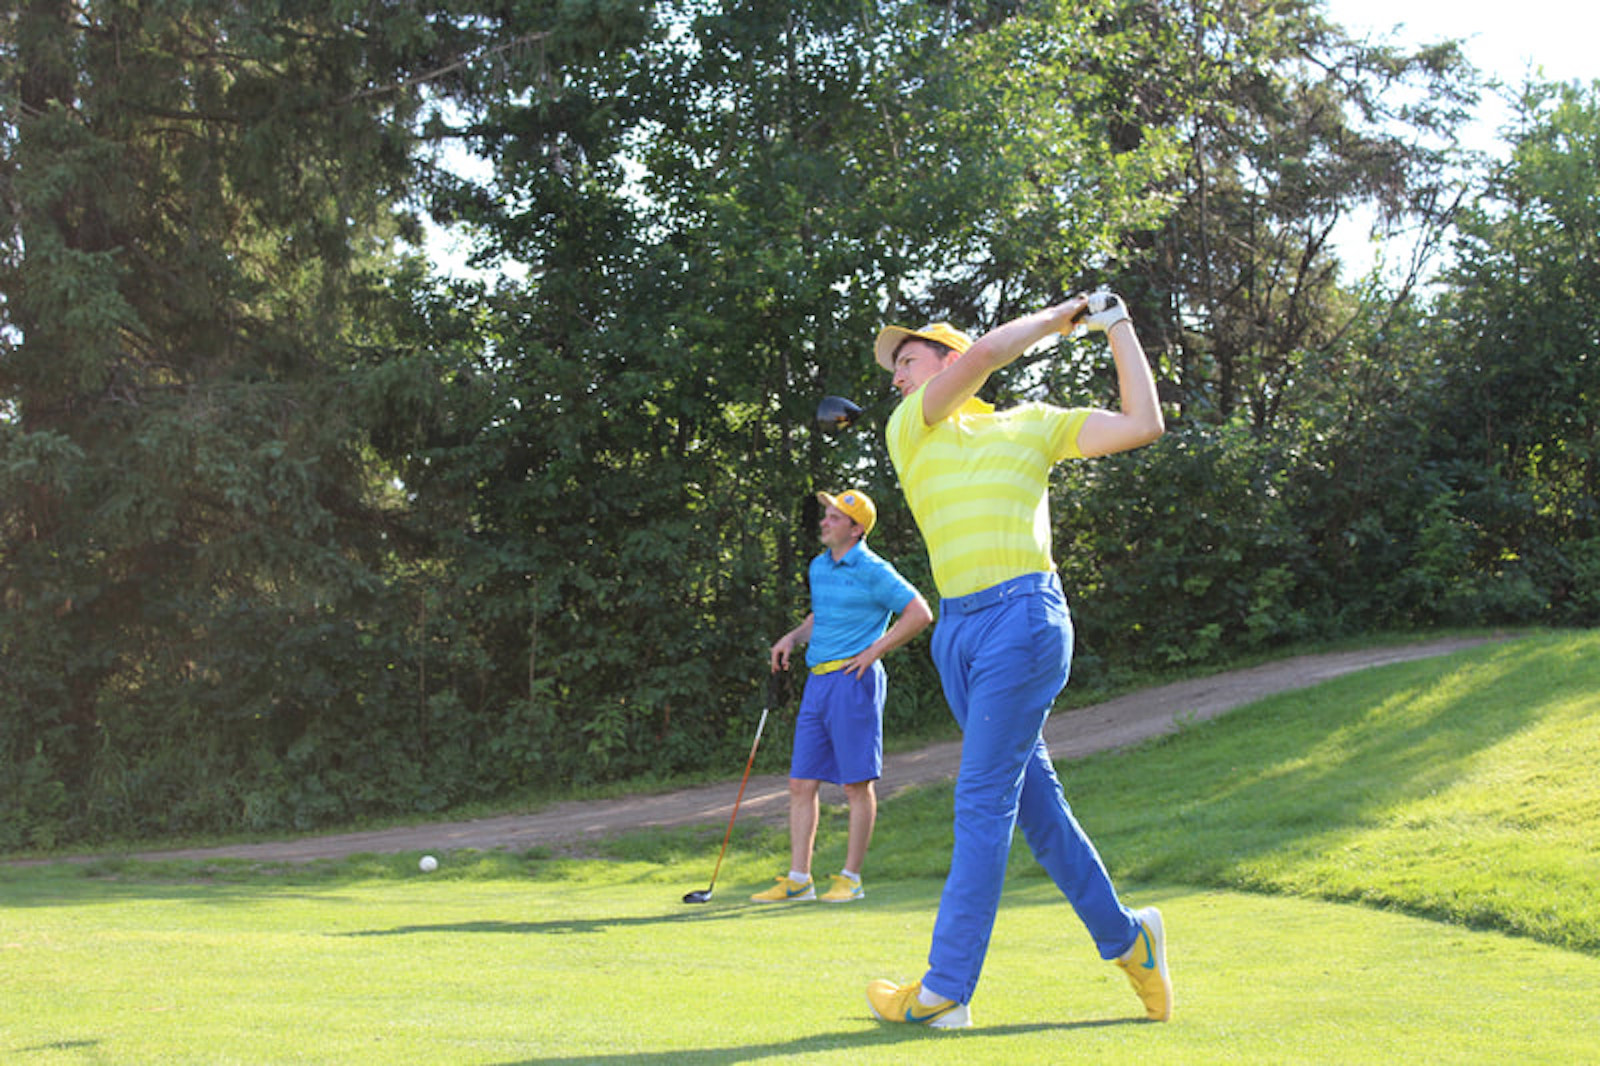 Dylan Thornborough hits a shot while Patrick Law looks on during a past Marathon Monday at Glenboro Golf and Country Club. The event raises money for the Canadian Cancer Society and is set for July 26 this year.